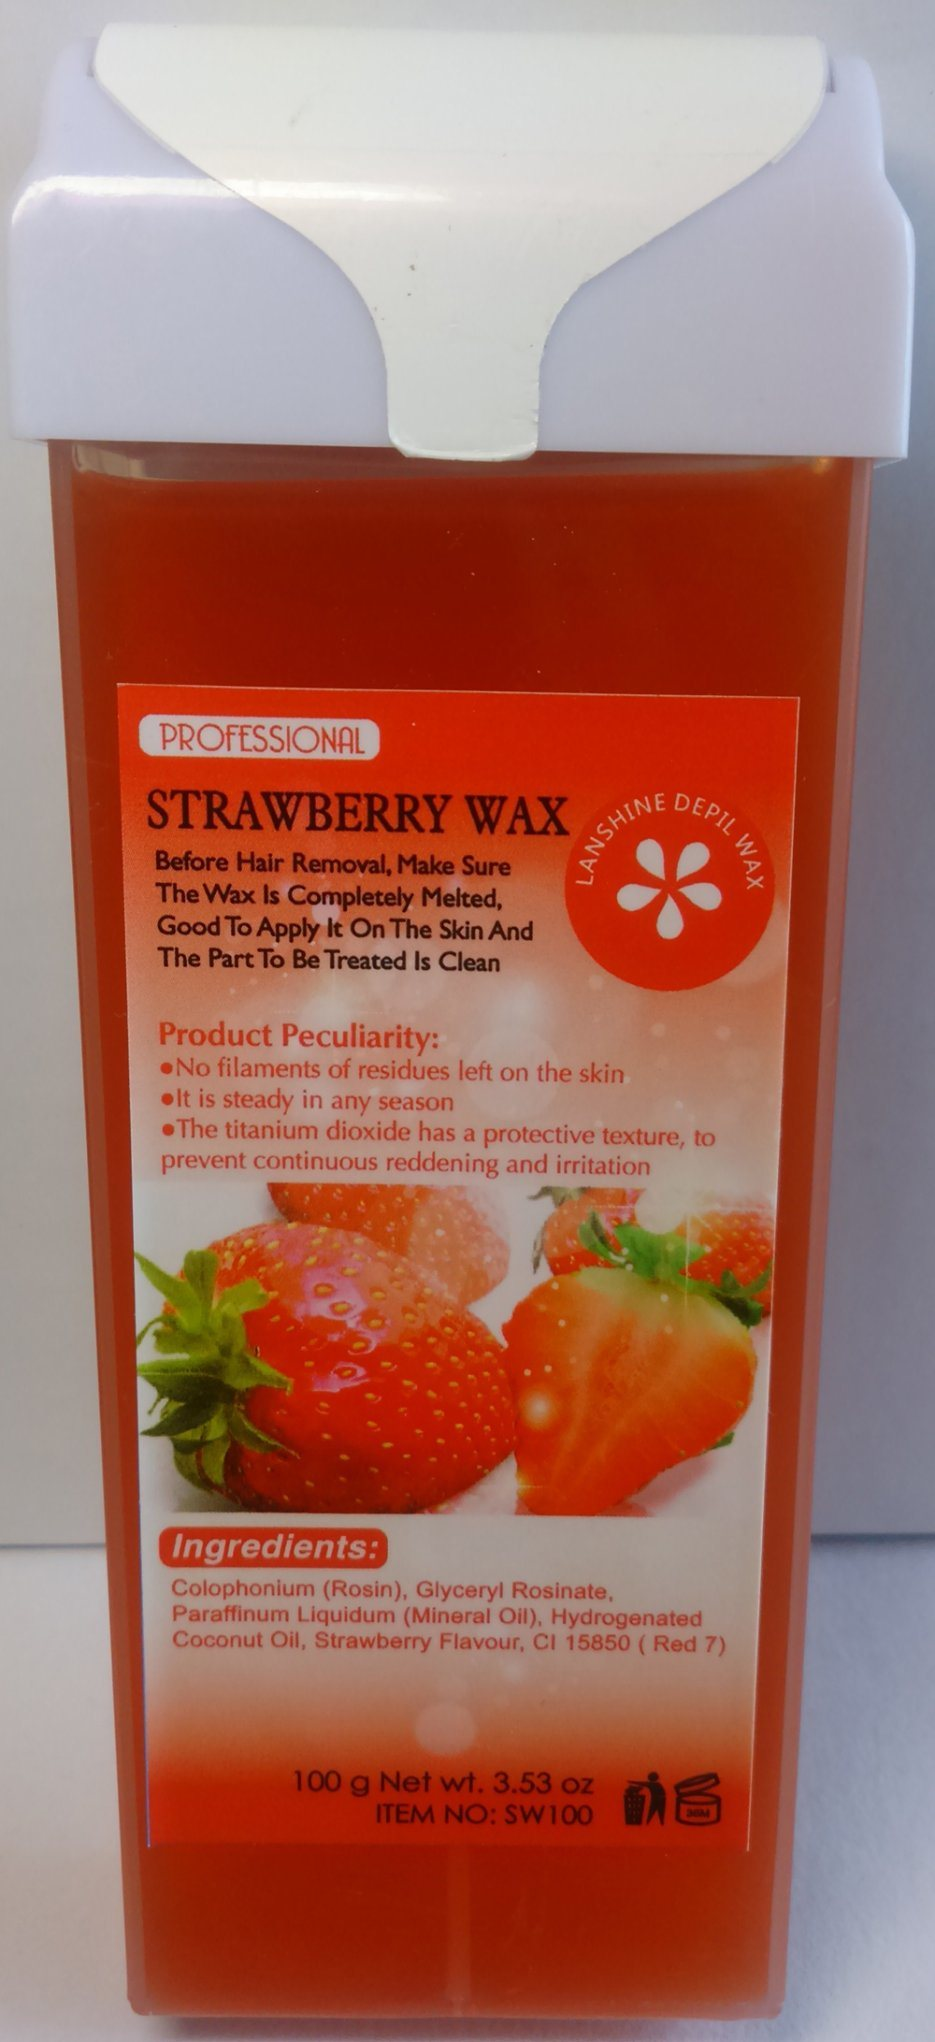 Roll-on Depilatory Wax Strawberry Wax